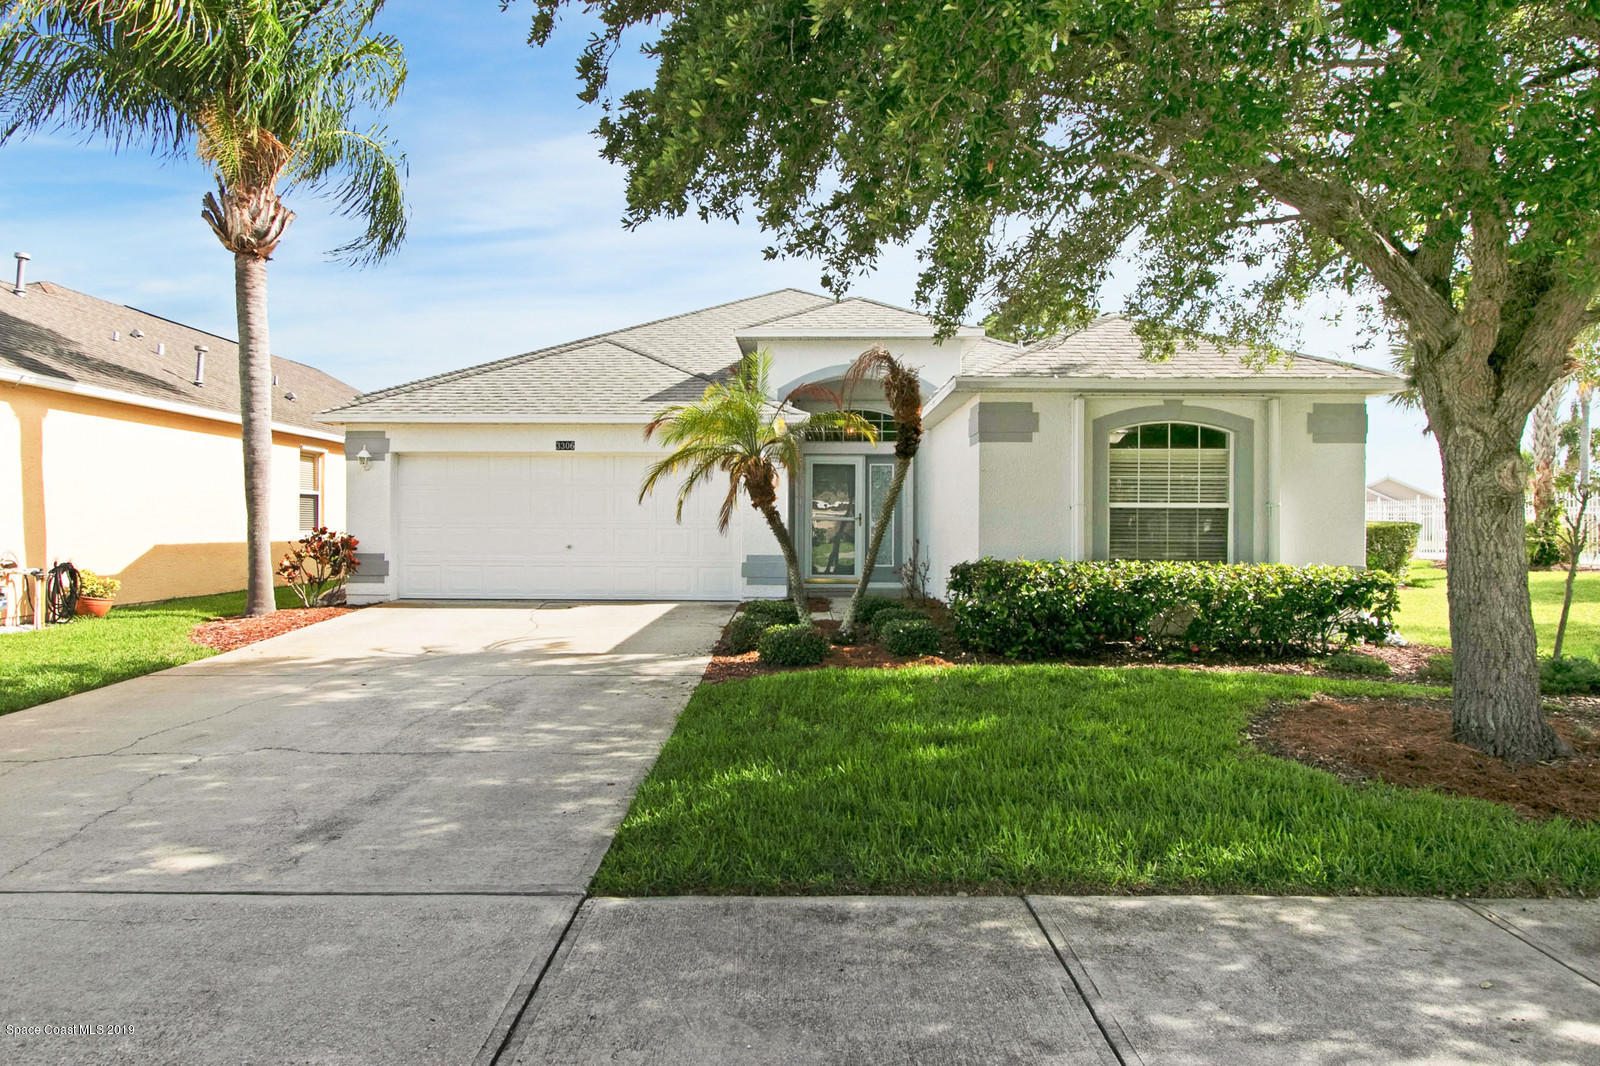 Single Family Homes for Sale at 3306 Hoofprint Melbourne, Florida 32940 United States